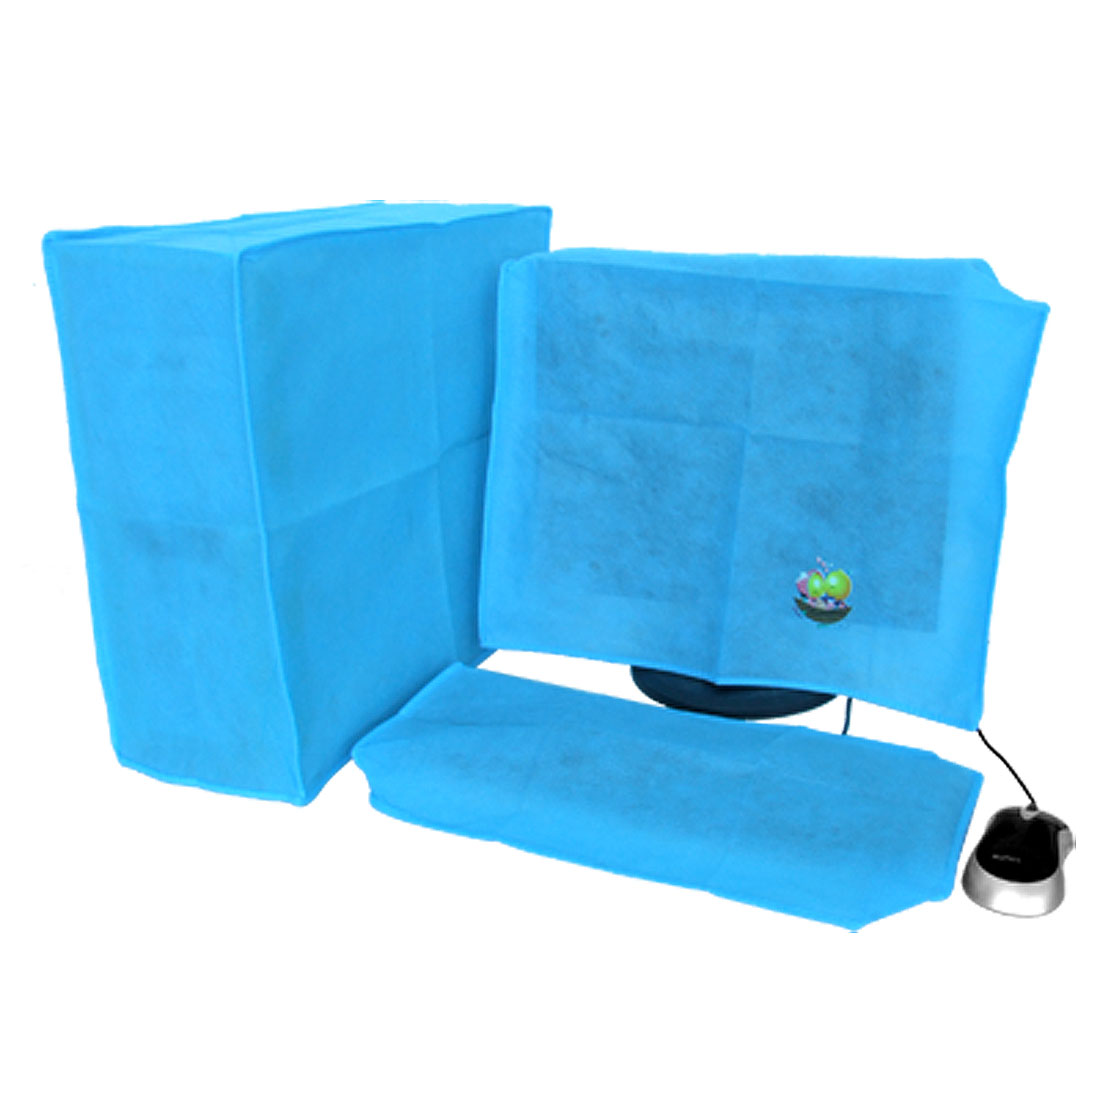 "17"" 19"" LCD Computer Nonwoven Fabric Dustproof Jacket Cover Blue"